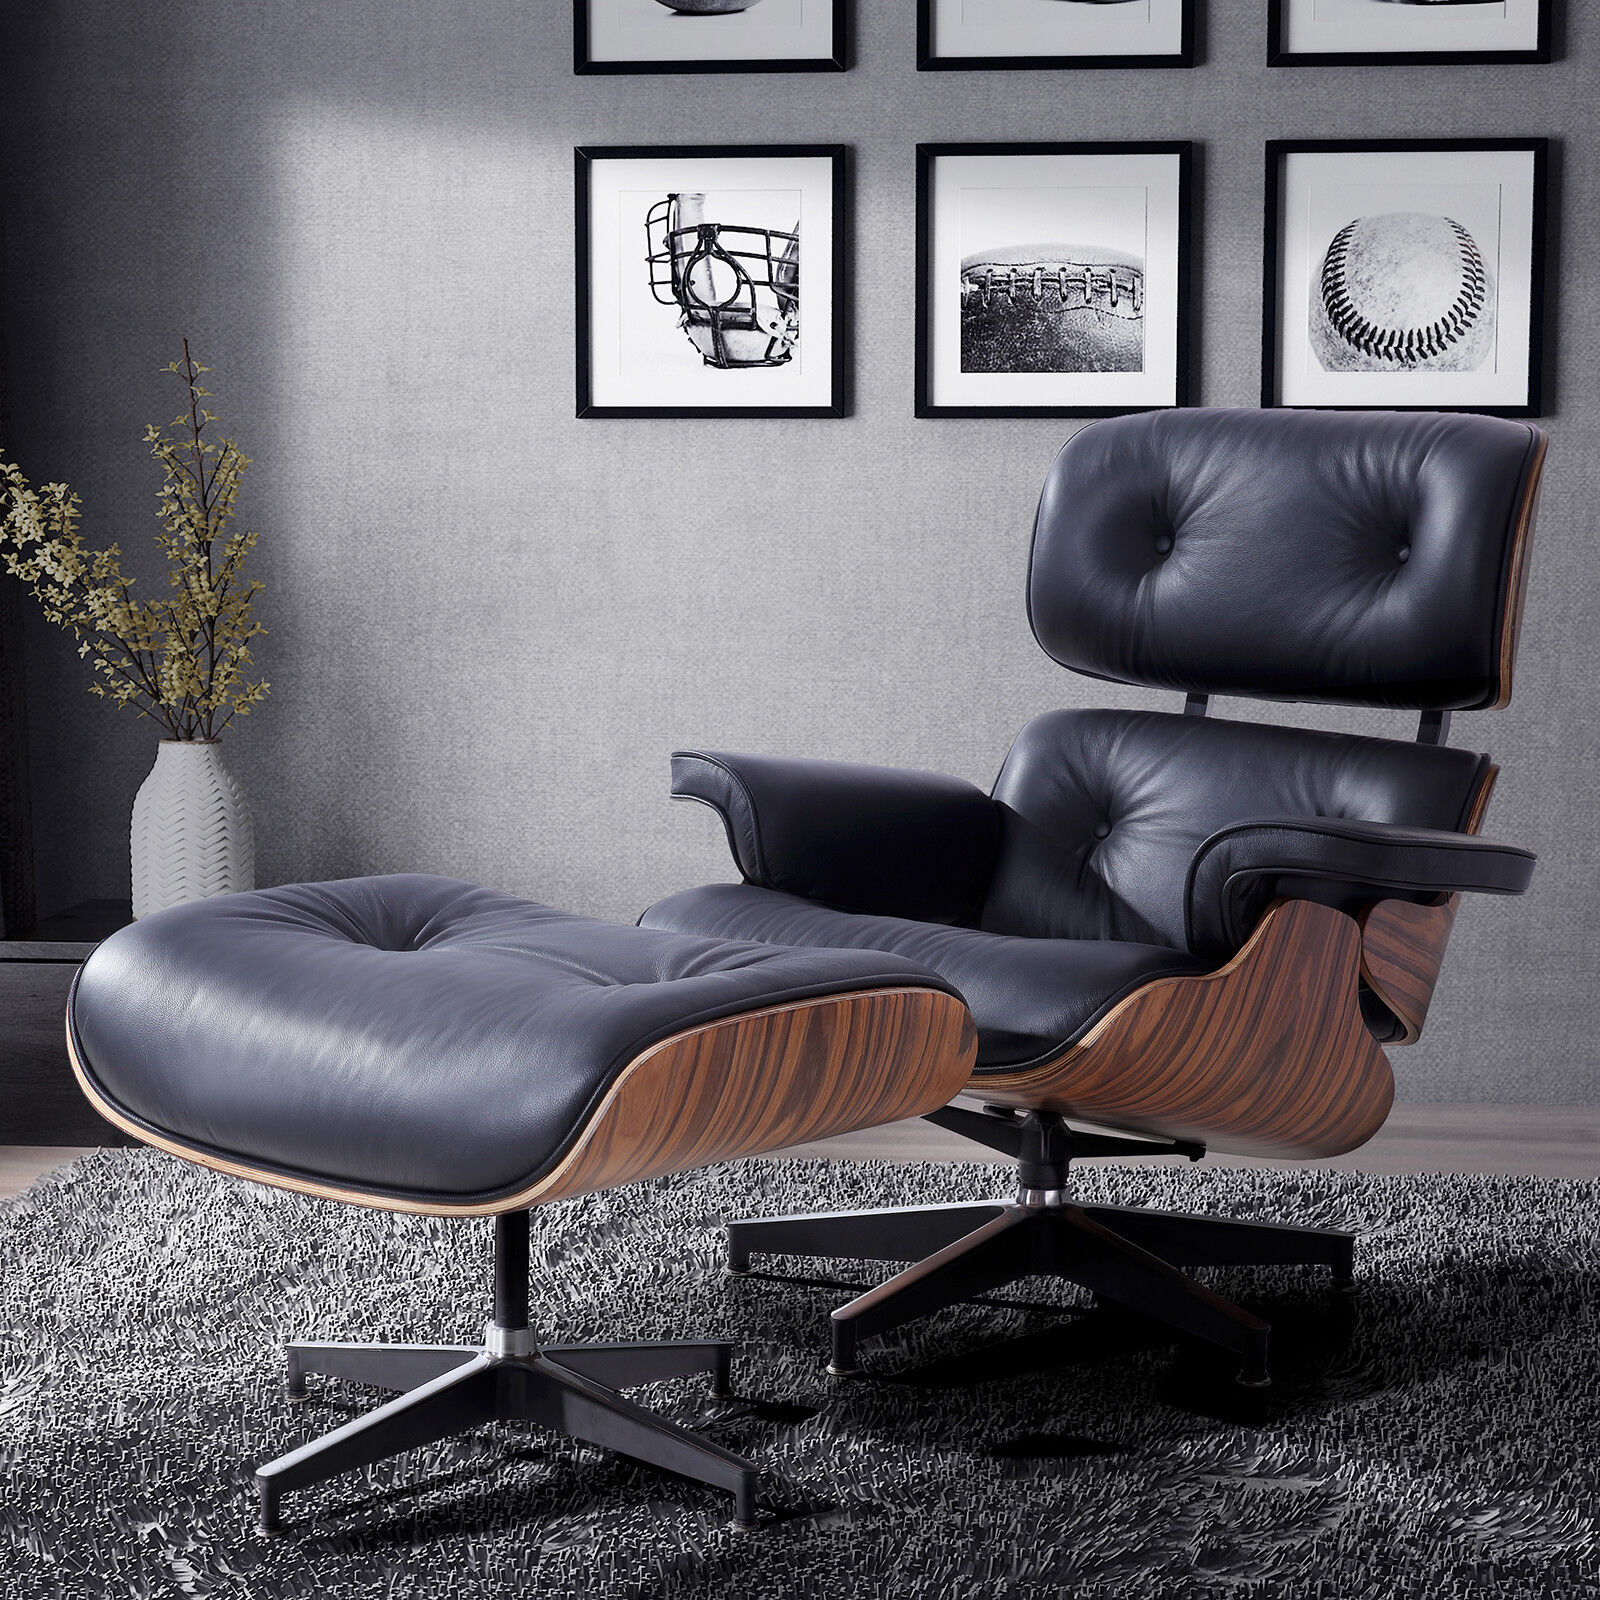 100 Italian Leather Lounge Chair With